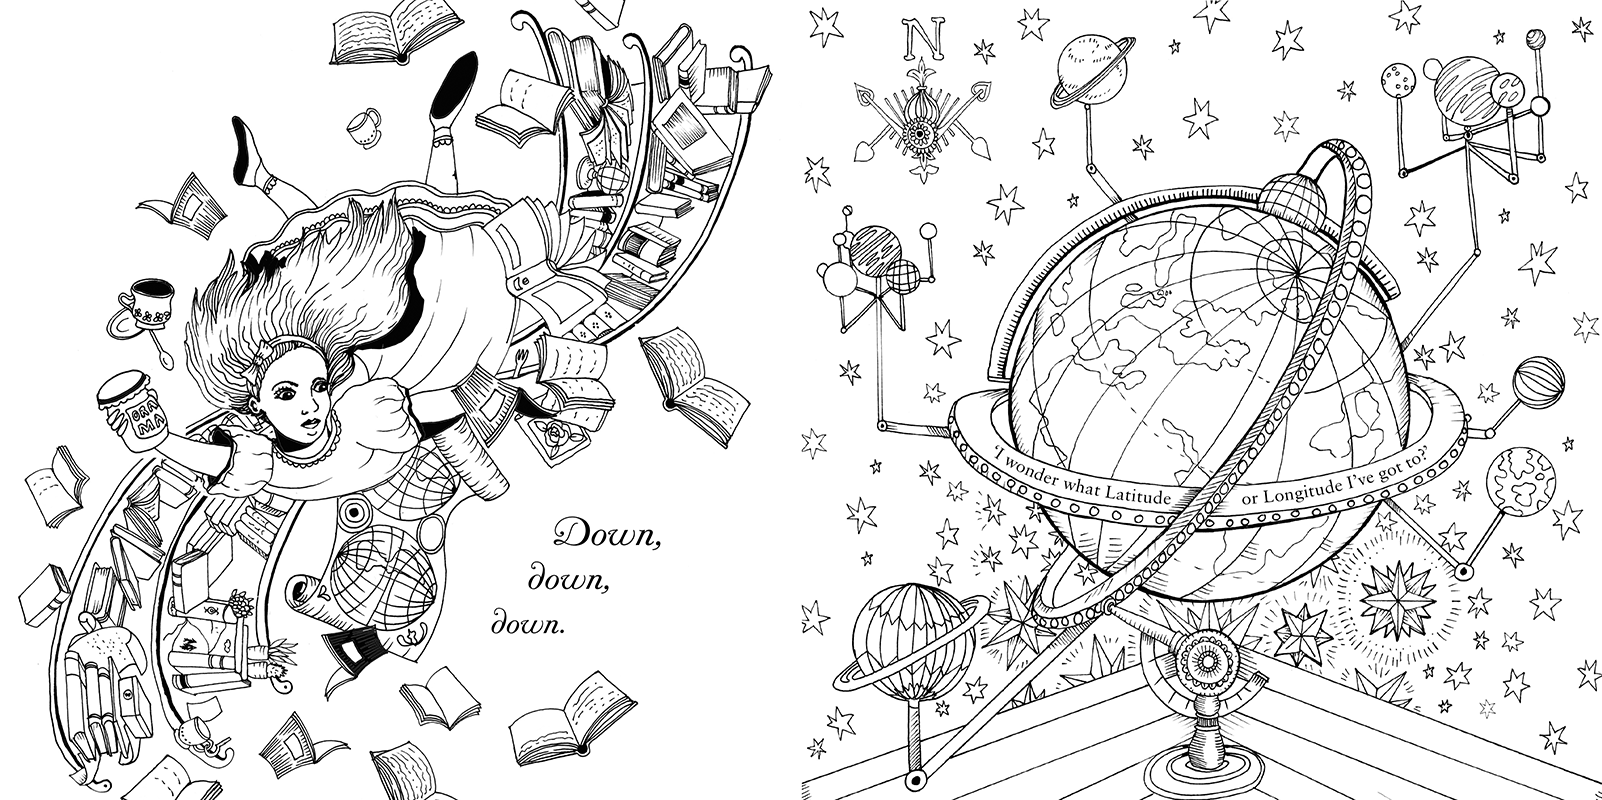 escape to wonderland colouring book - Google Search | Printables ...